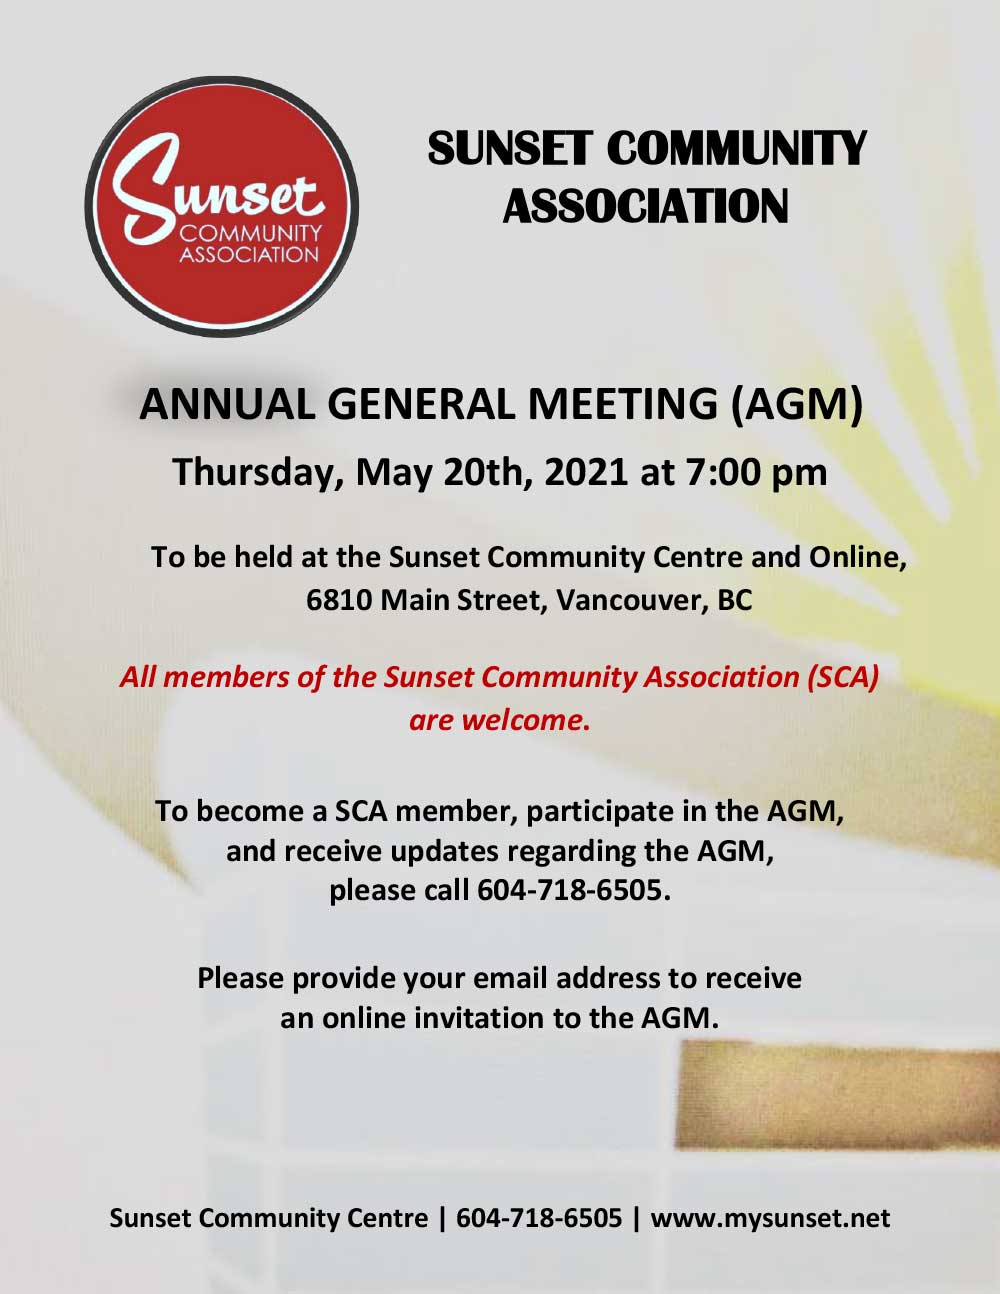 Sunset Community Association ANNUAL GENERAL MEETING (AGM) Thursday, May 20th, 2021 at 7:00 pm To be held at the Sunset Community Centre and Online, 6810 Main St, Vancouver, BC All members of the Sunset Community Association (SCA) are welcome. To become a SCA member, participate in the AGM, and receive updates regarding the AGM, please call 604-718-6505. Please provide your email address to receive an online invitation to the AGM. Sunset Community Centre | 604-718-6505 | www.mysunset.net